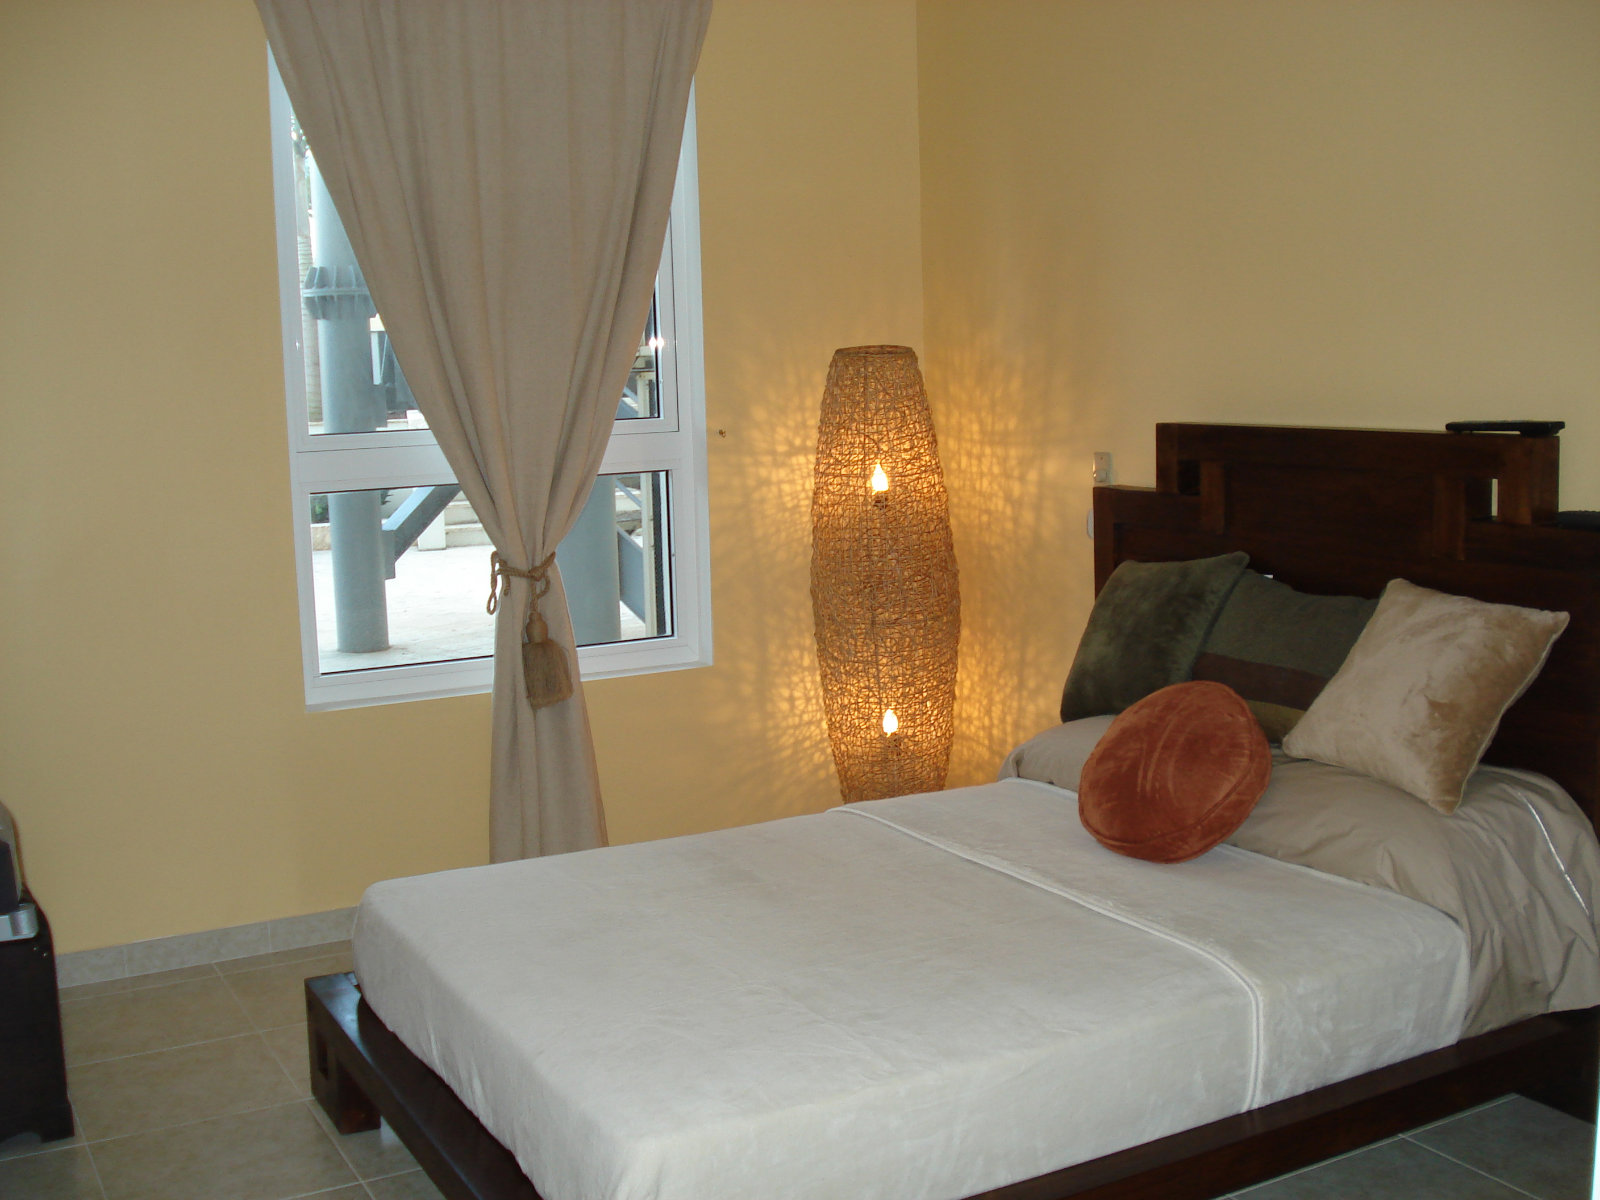 2 Bedroom 2 Bath Apartment Close To Campus Very Reasonable Rent Gated Community